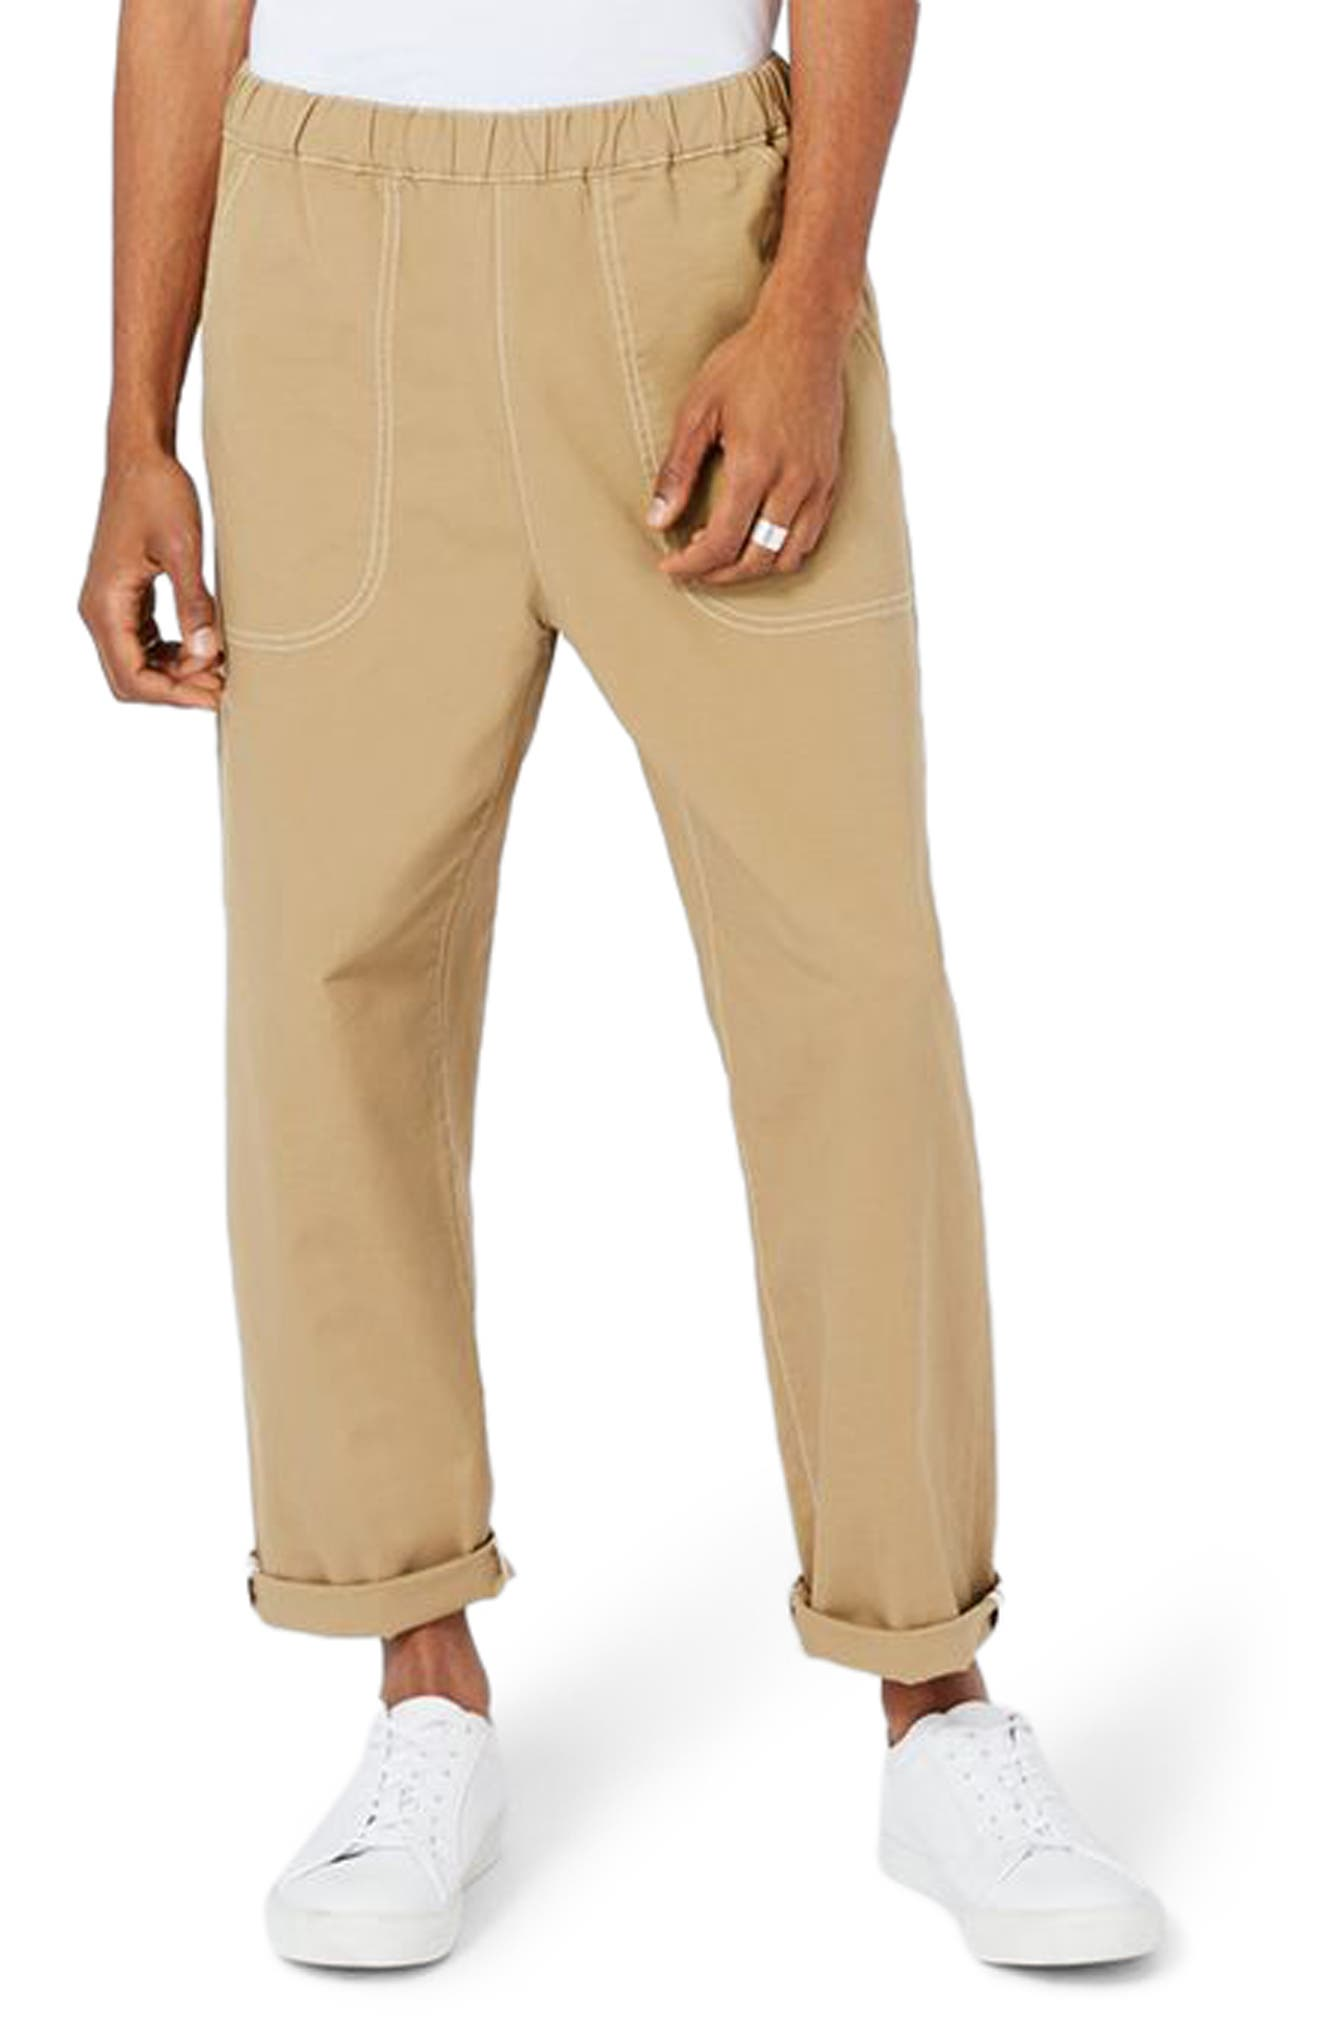 Topman LTD Collection Roll Hem Elastic Waist Chinos